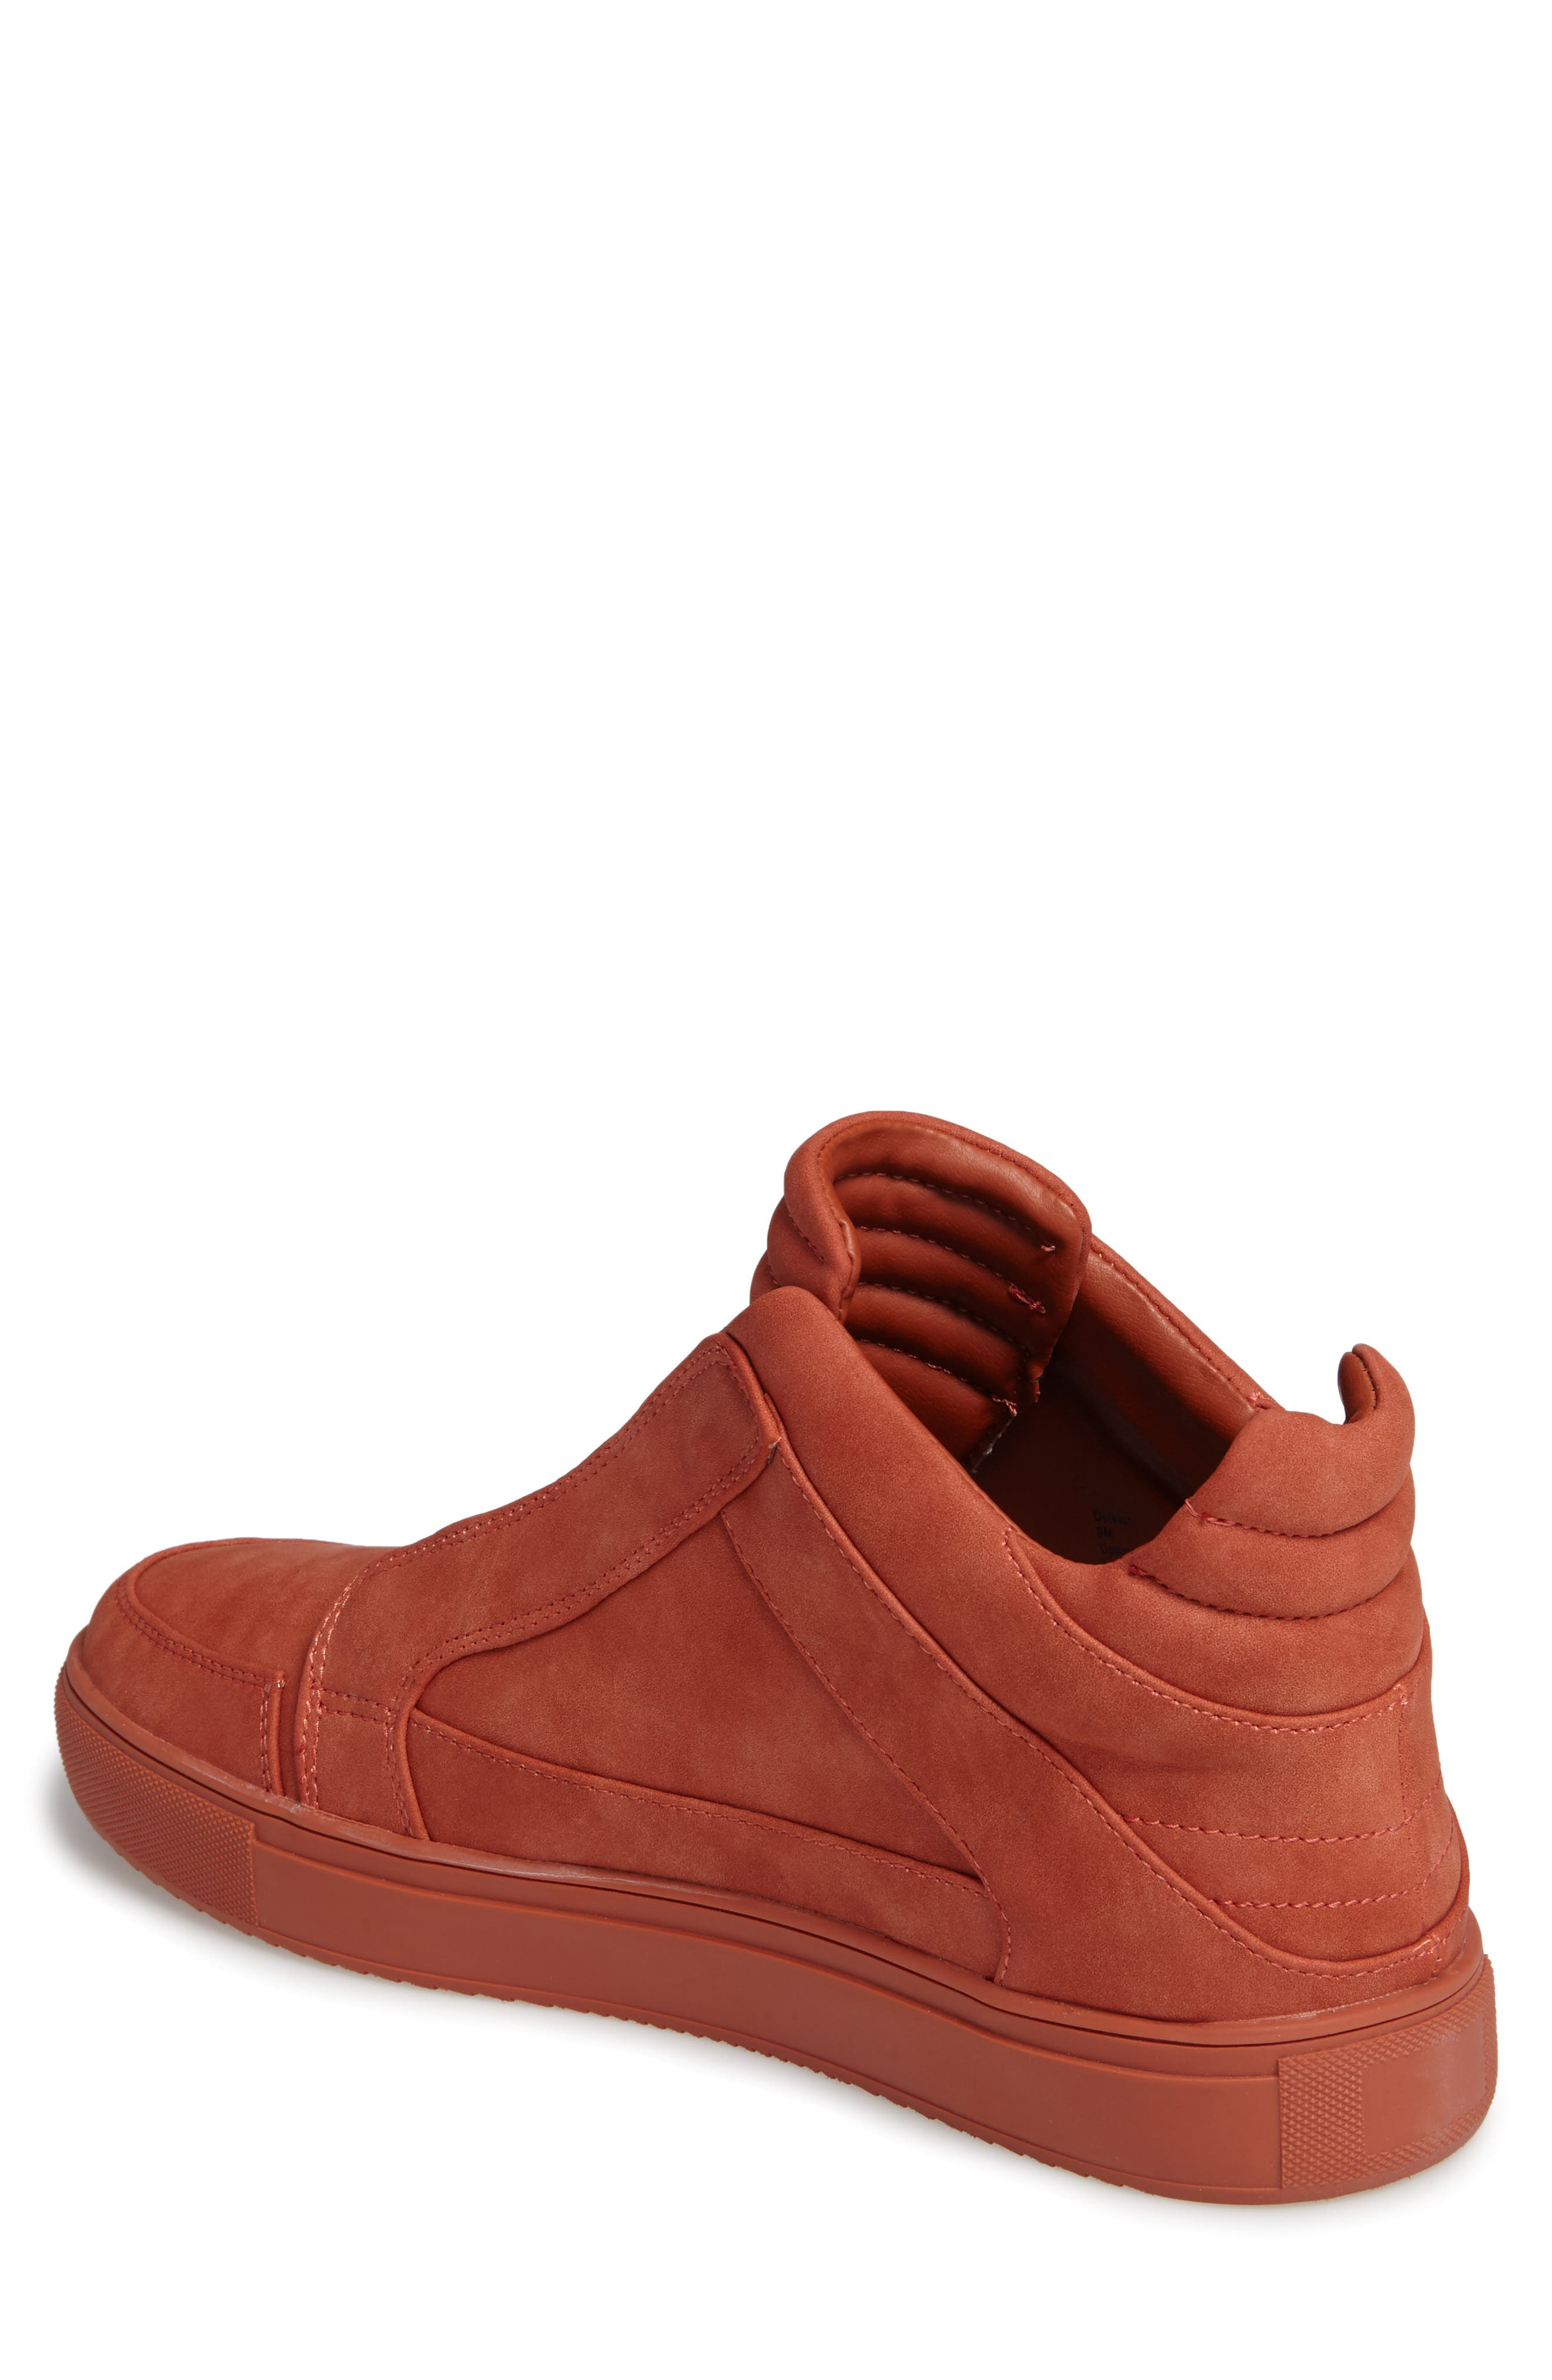 Alternate Image 2  - Steve Madden Defstar Sneaker (Men)